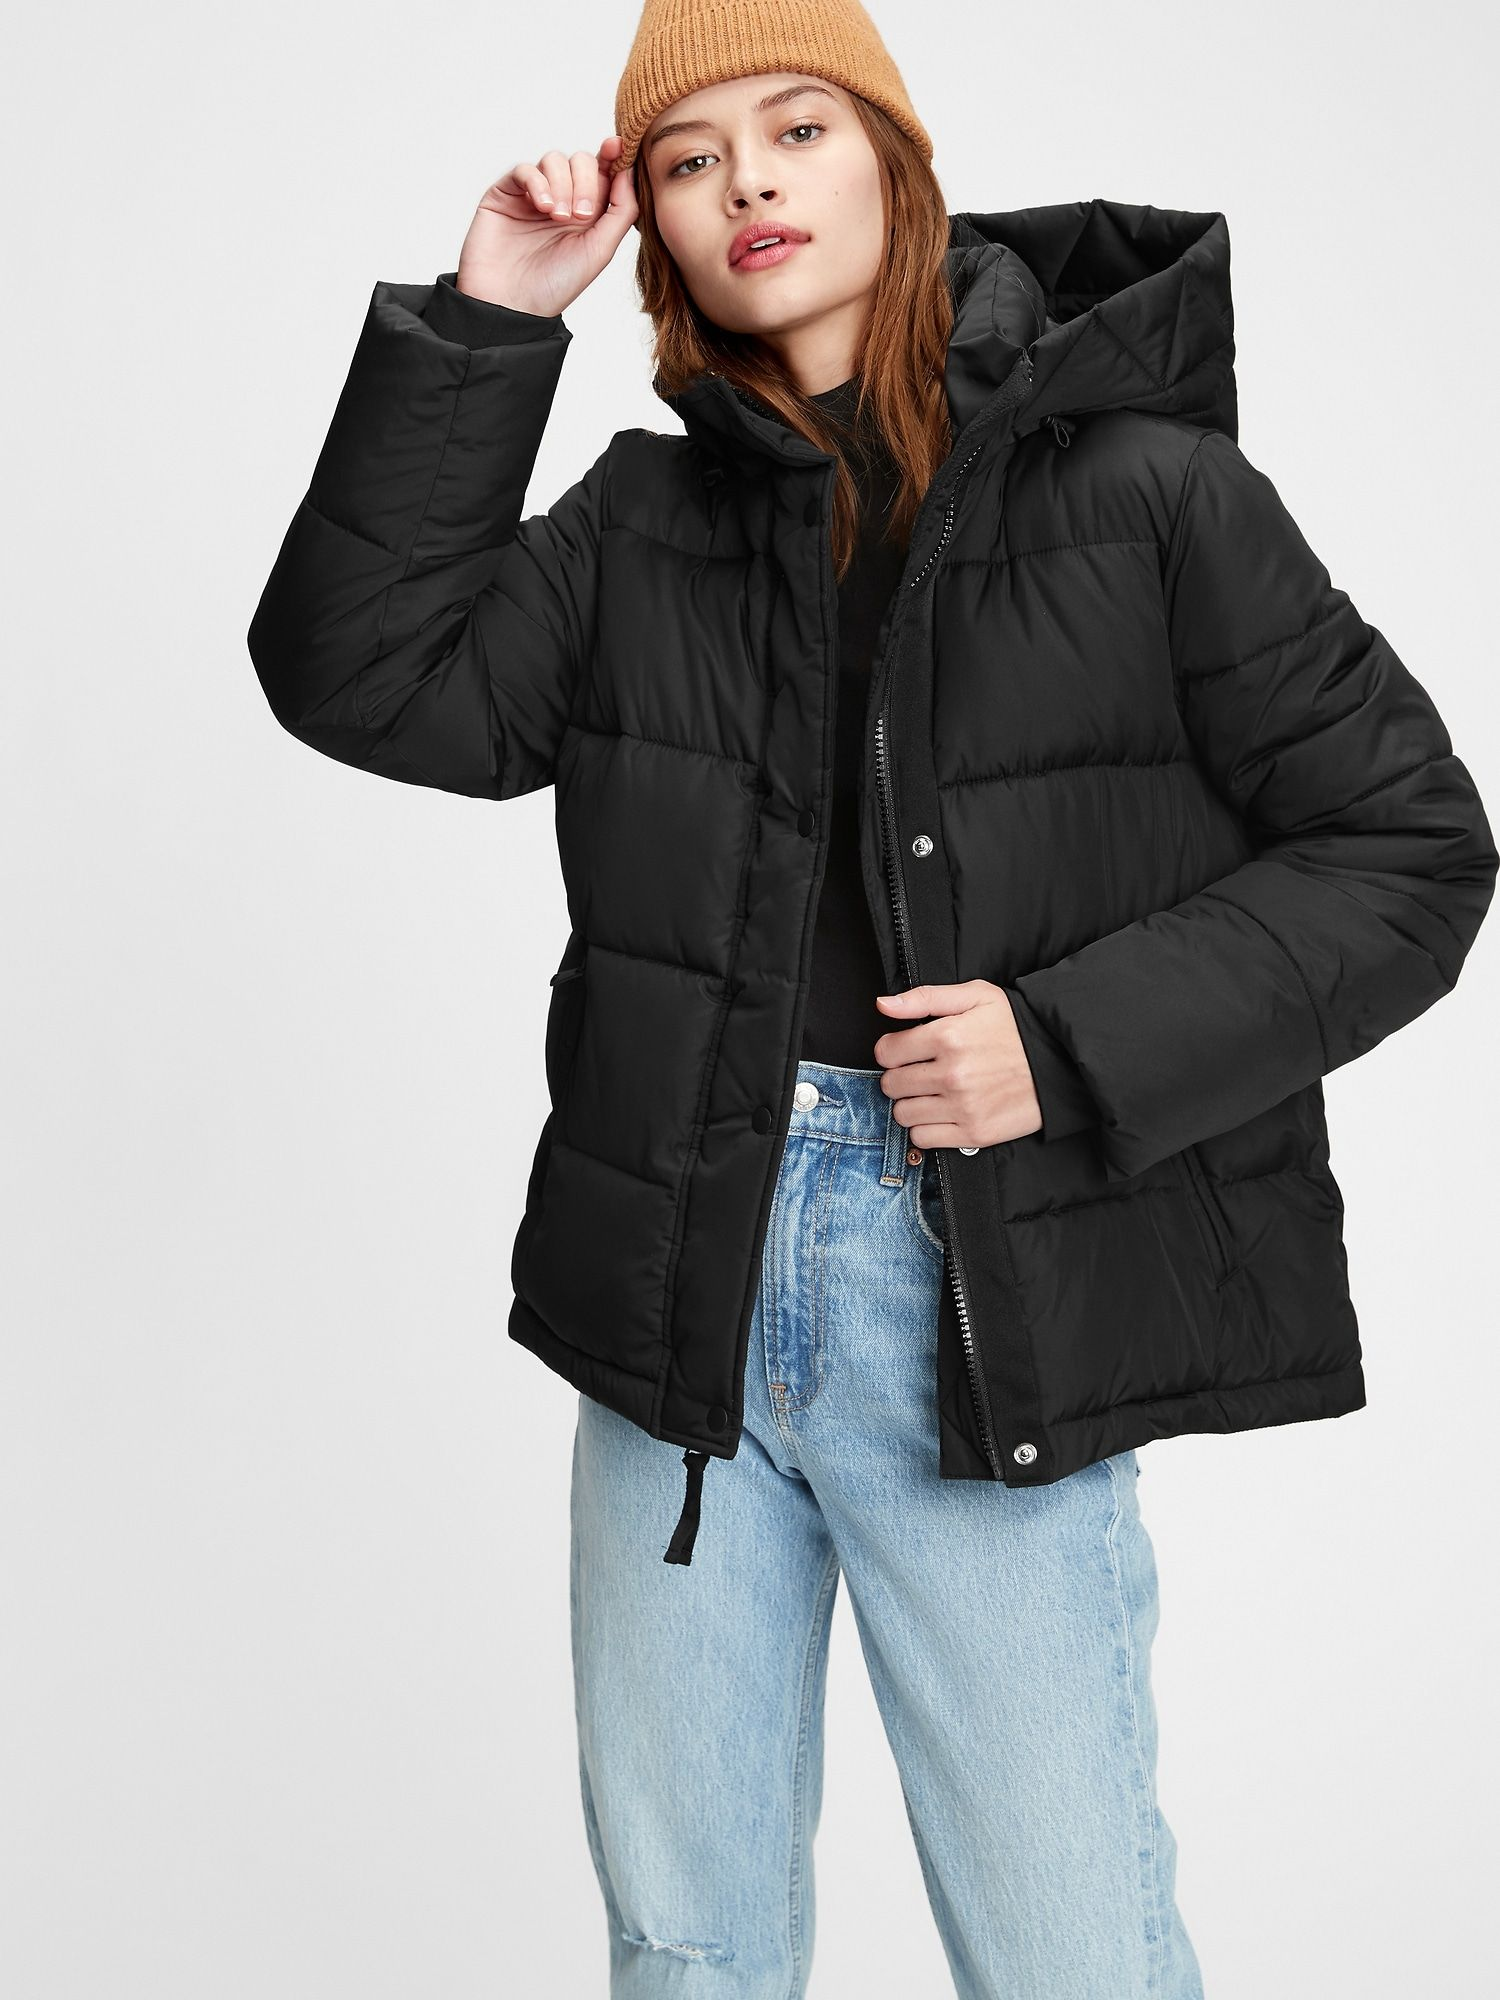 Upcycled Midweight Puffer Jacket Gap Jackets Puffer Jackets Clothes [ 2000 x 1500 Pixel ]